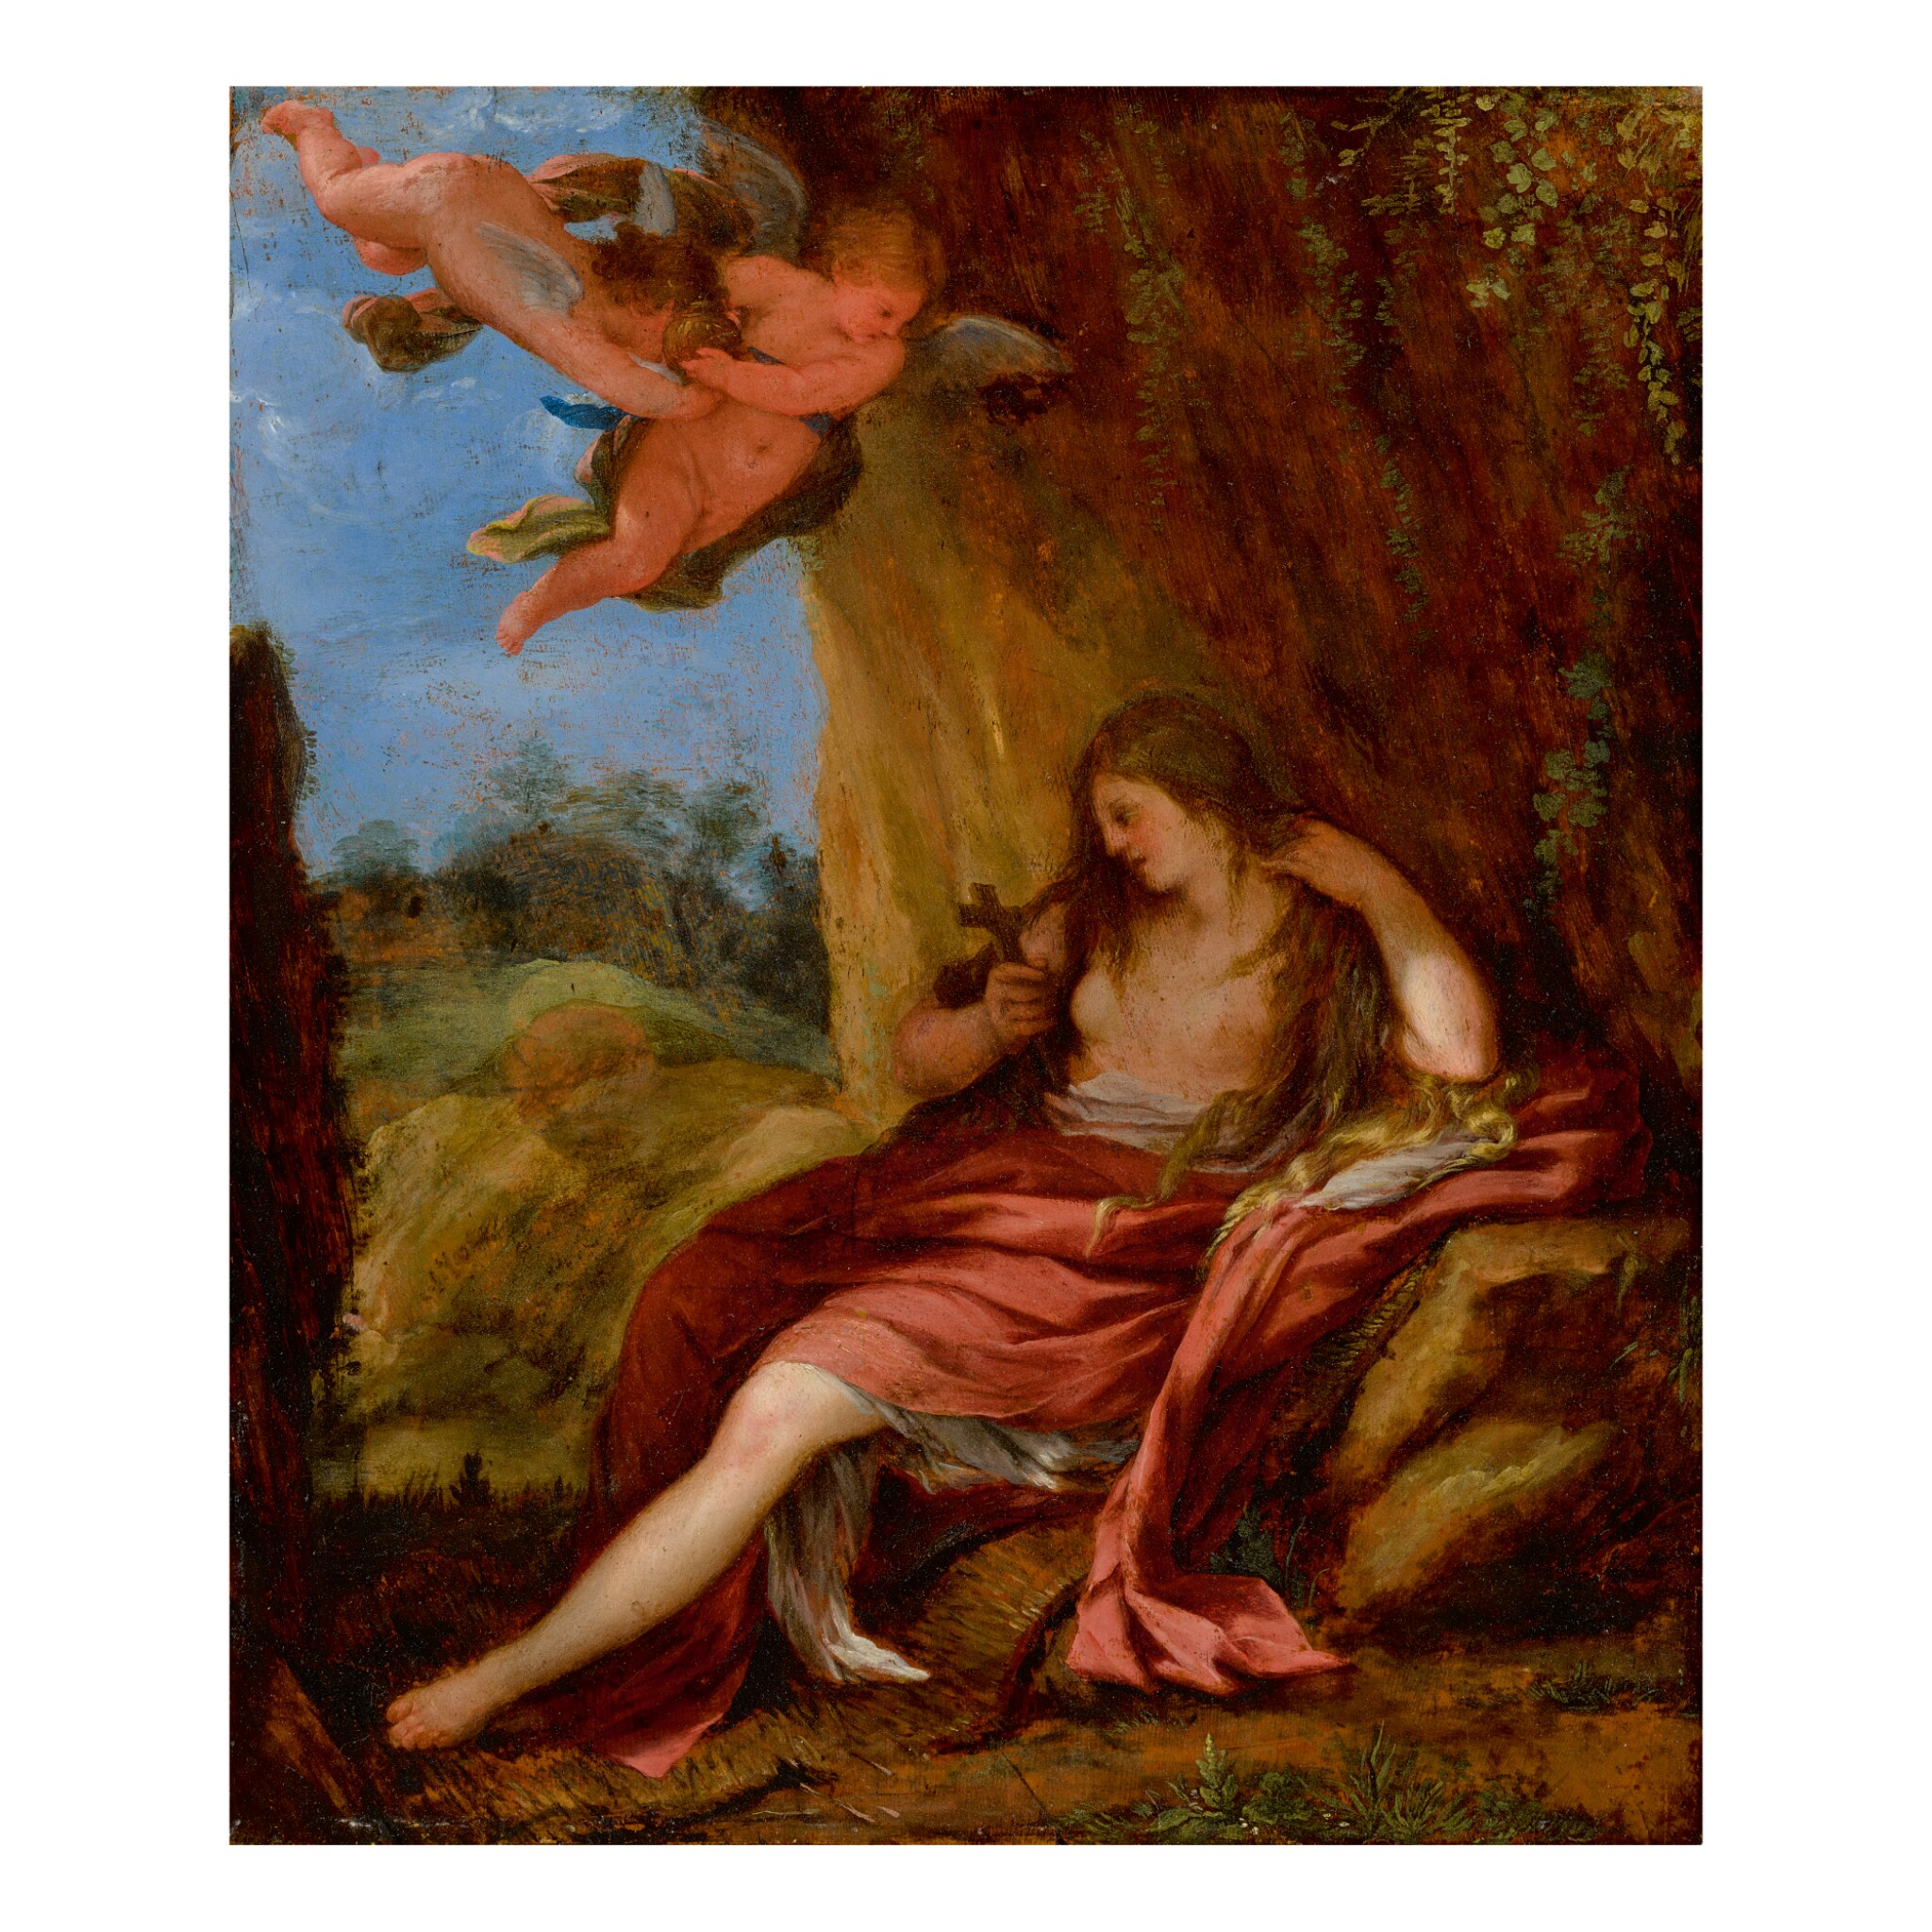 View full screen - View 1 of Lot 56. ROMAN SCHOOL, 17TH CENTURY   THE PENITENT MARY MAGDALENE IN A CAVE WITH TWO PUTTI.